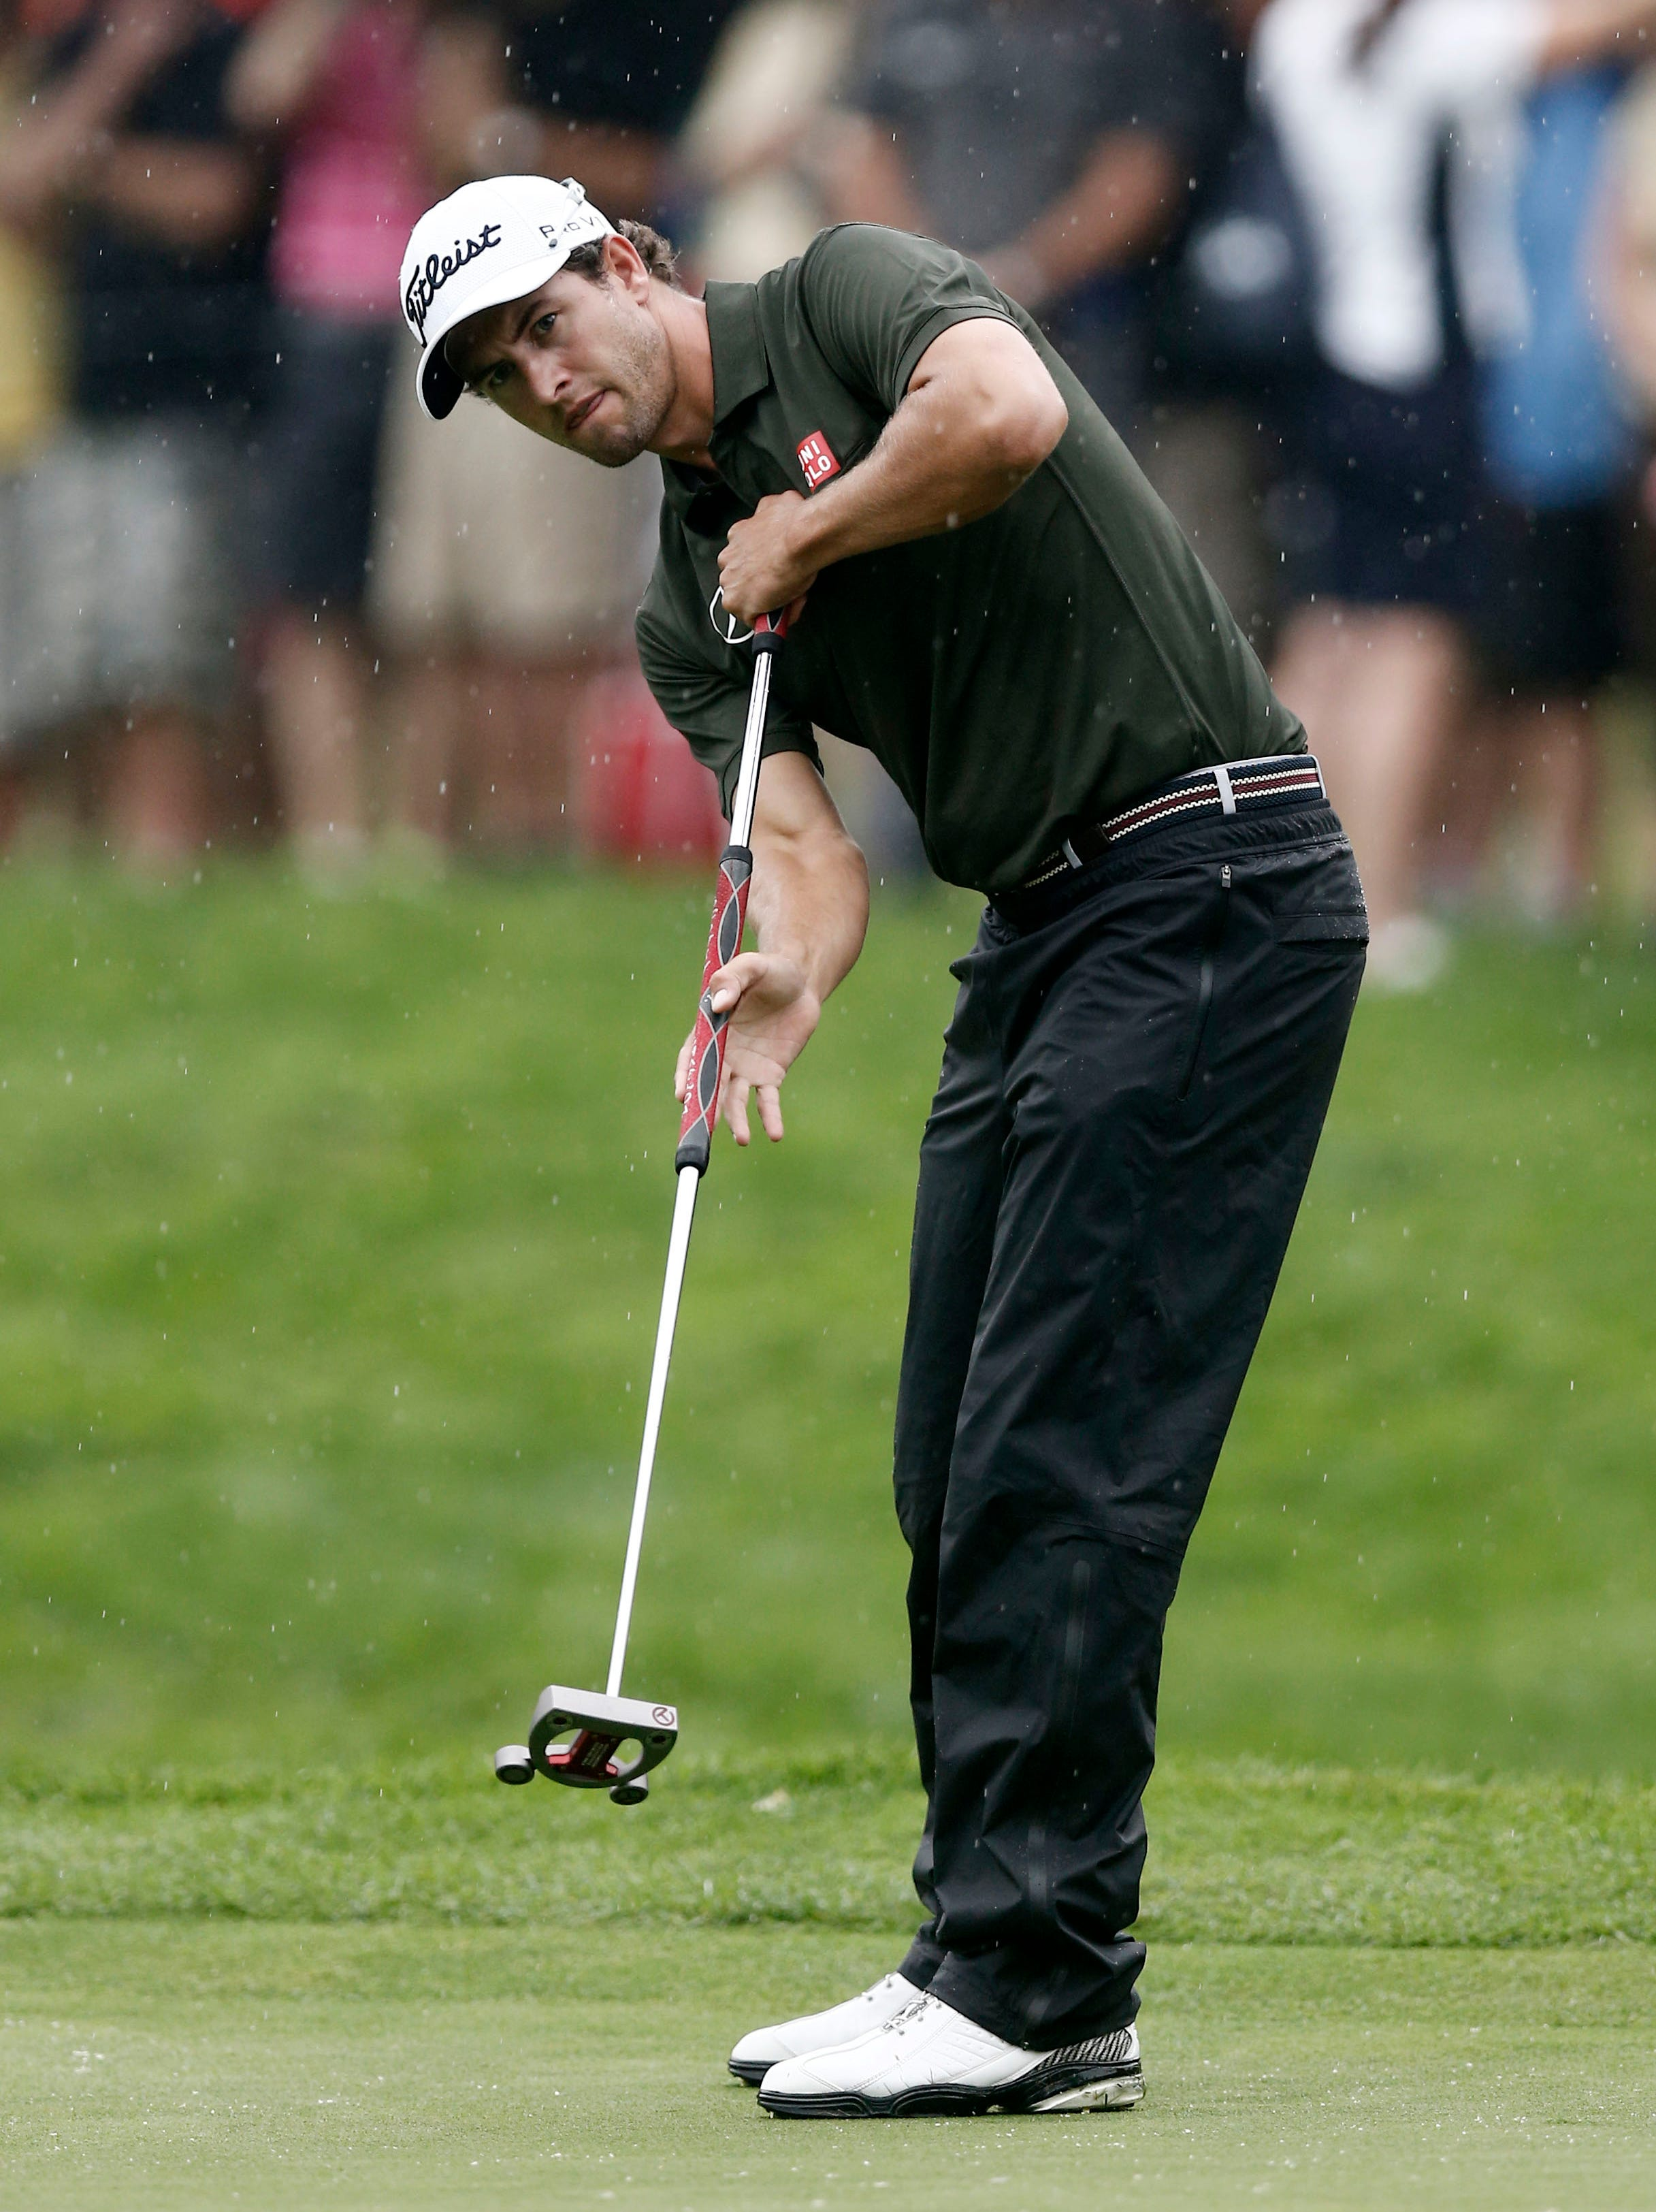 2013-8-9 pga adam scott putts 11